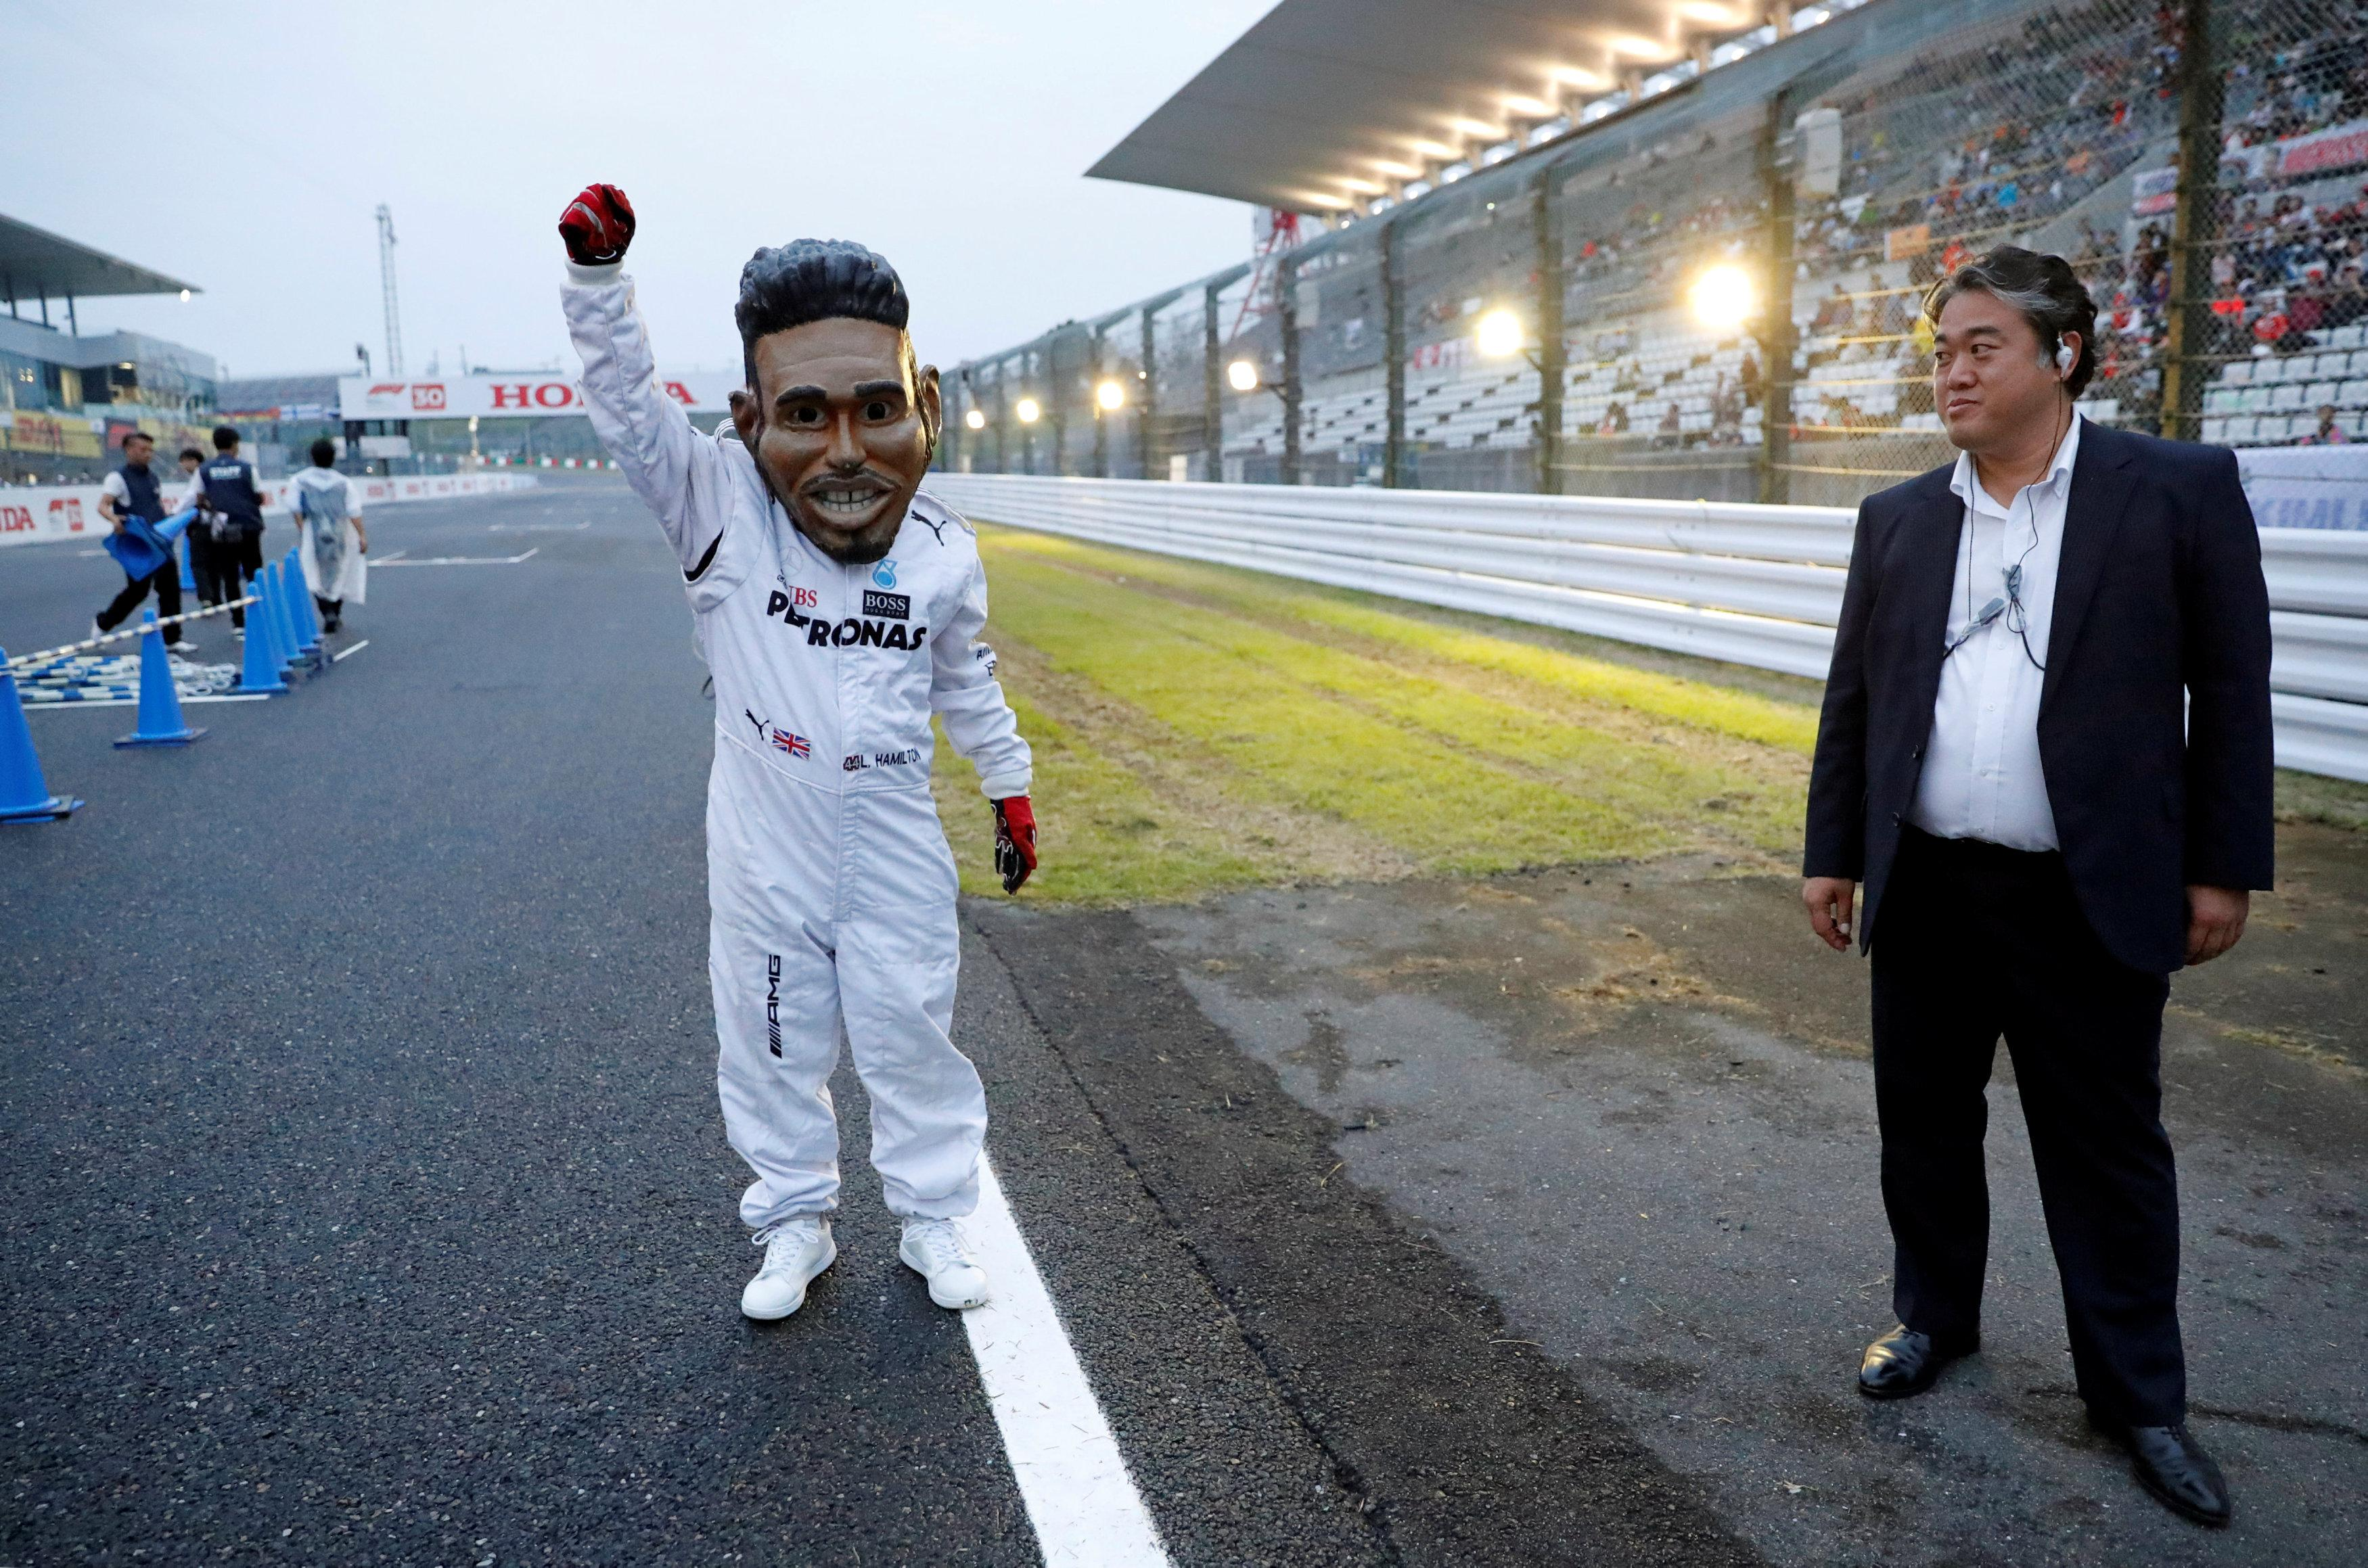 The F1 season turns to Suzuka for the Japanese GP this weekend